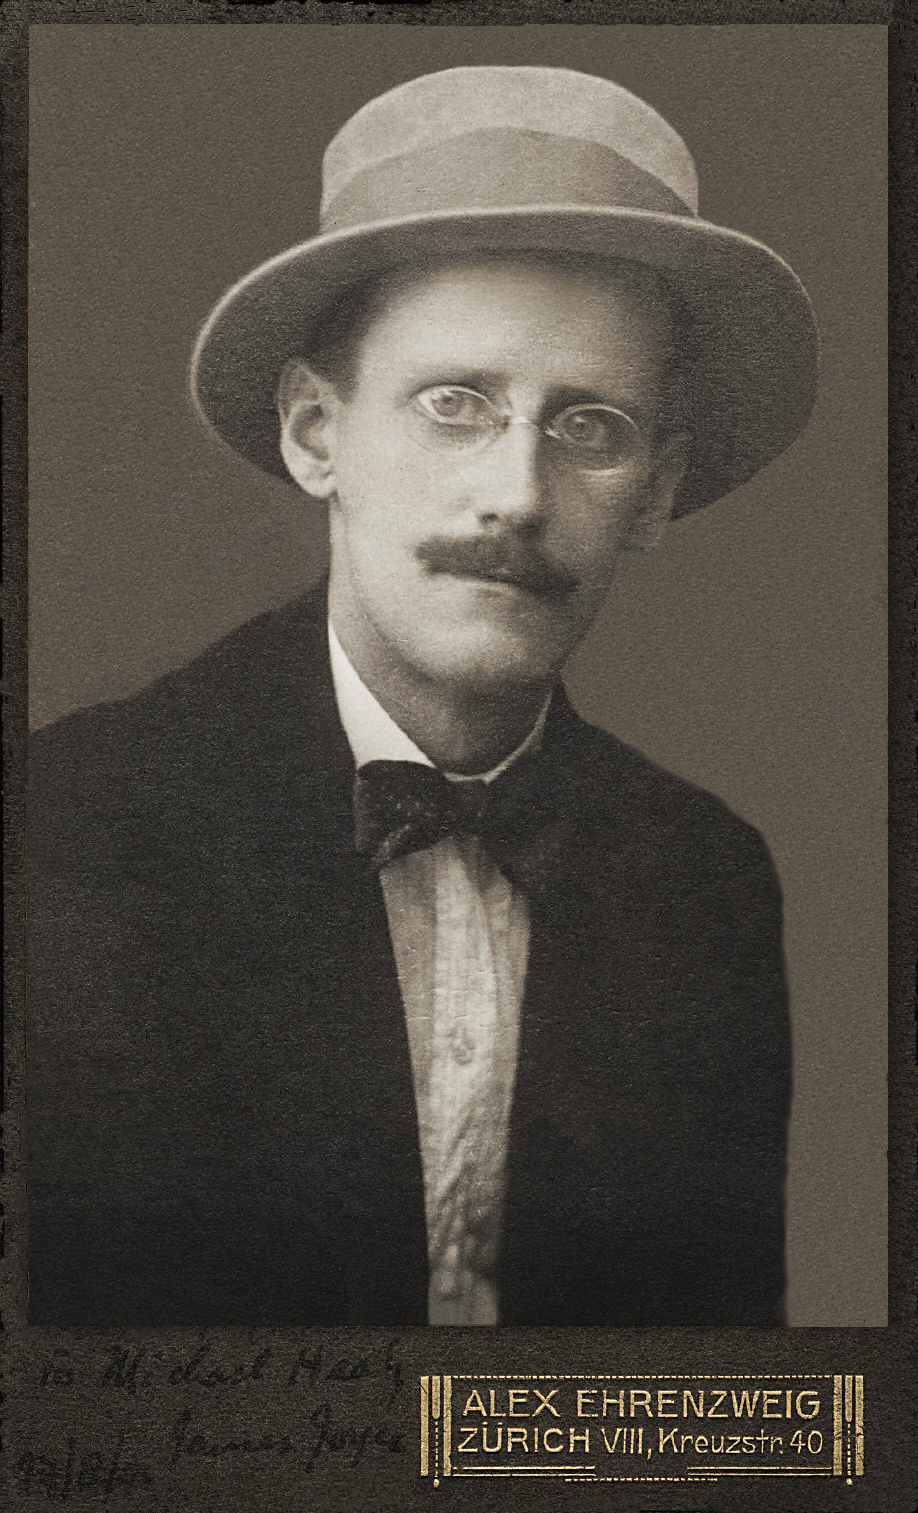 102 James_Joyce_by_Alex_Ehrenzweig,_1915_restored.jpg